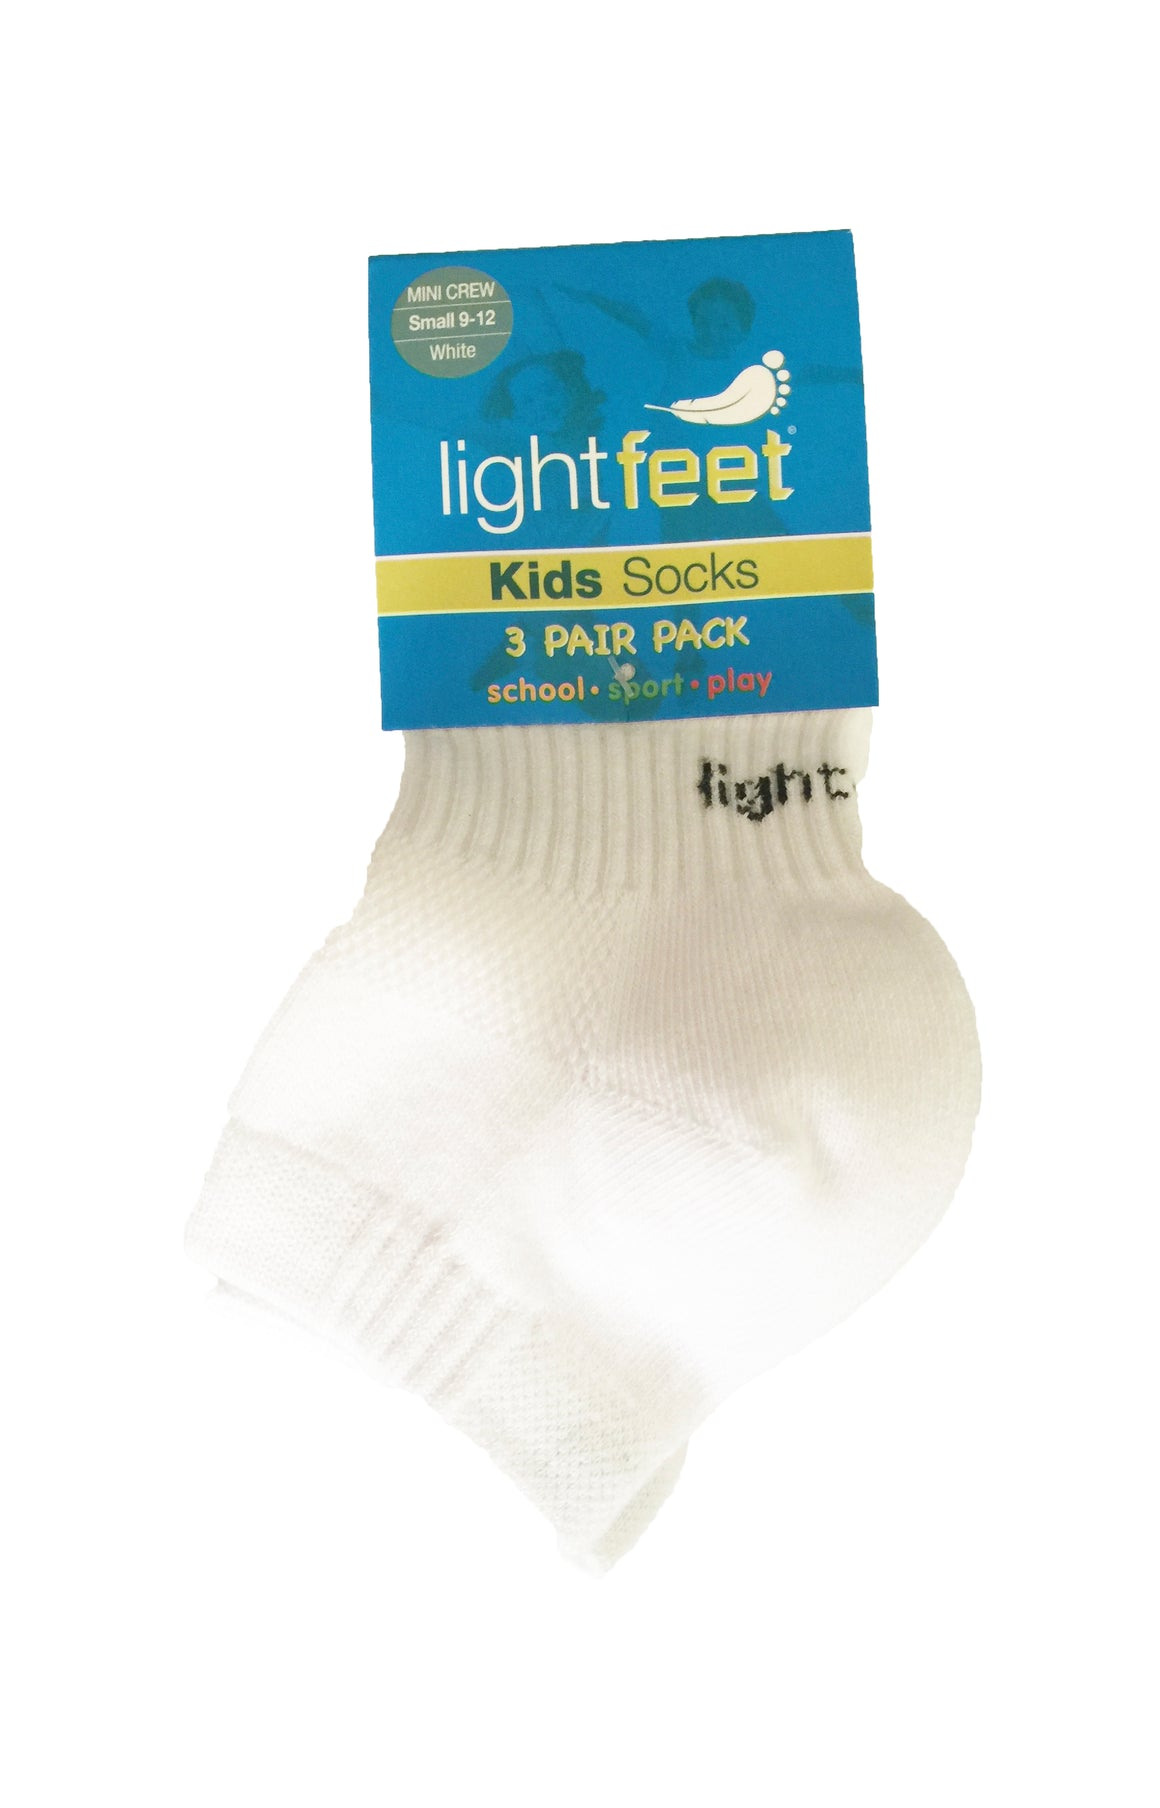 Lightfeet Kids School | Sport | Play Socks 3 Pack (Mini-Crew) - White